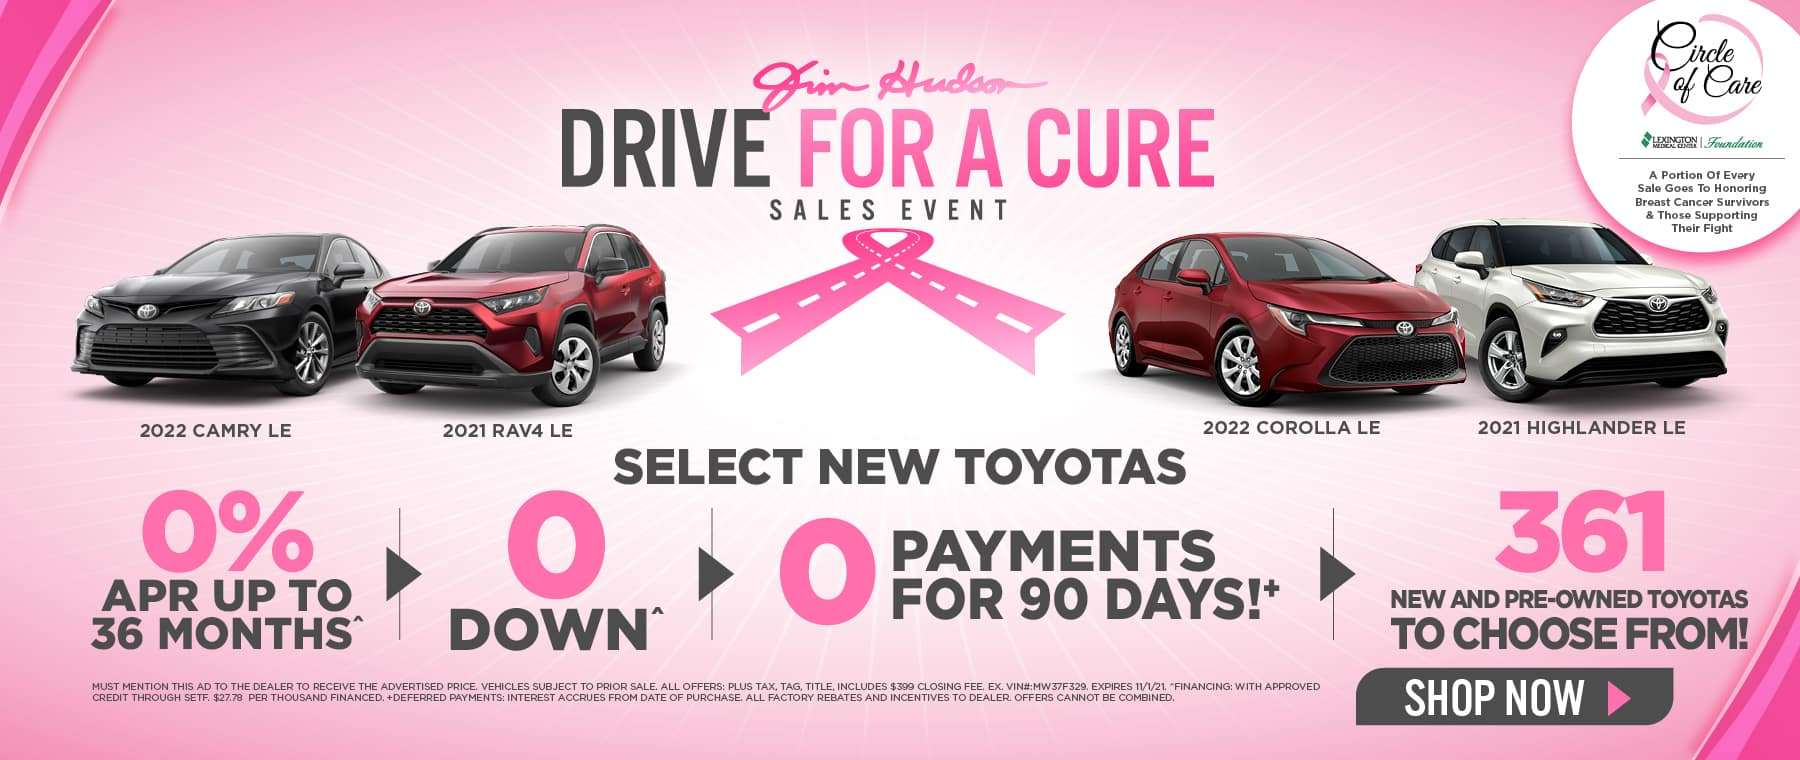 Jim Hudson Drive for a Cure Event - JHT